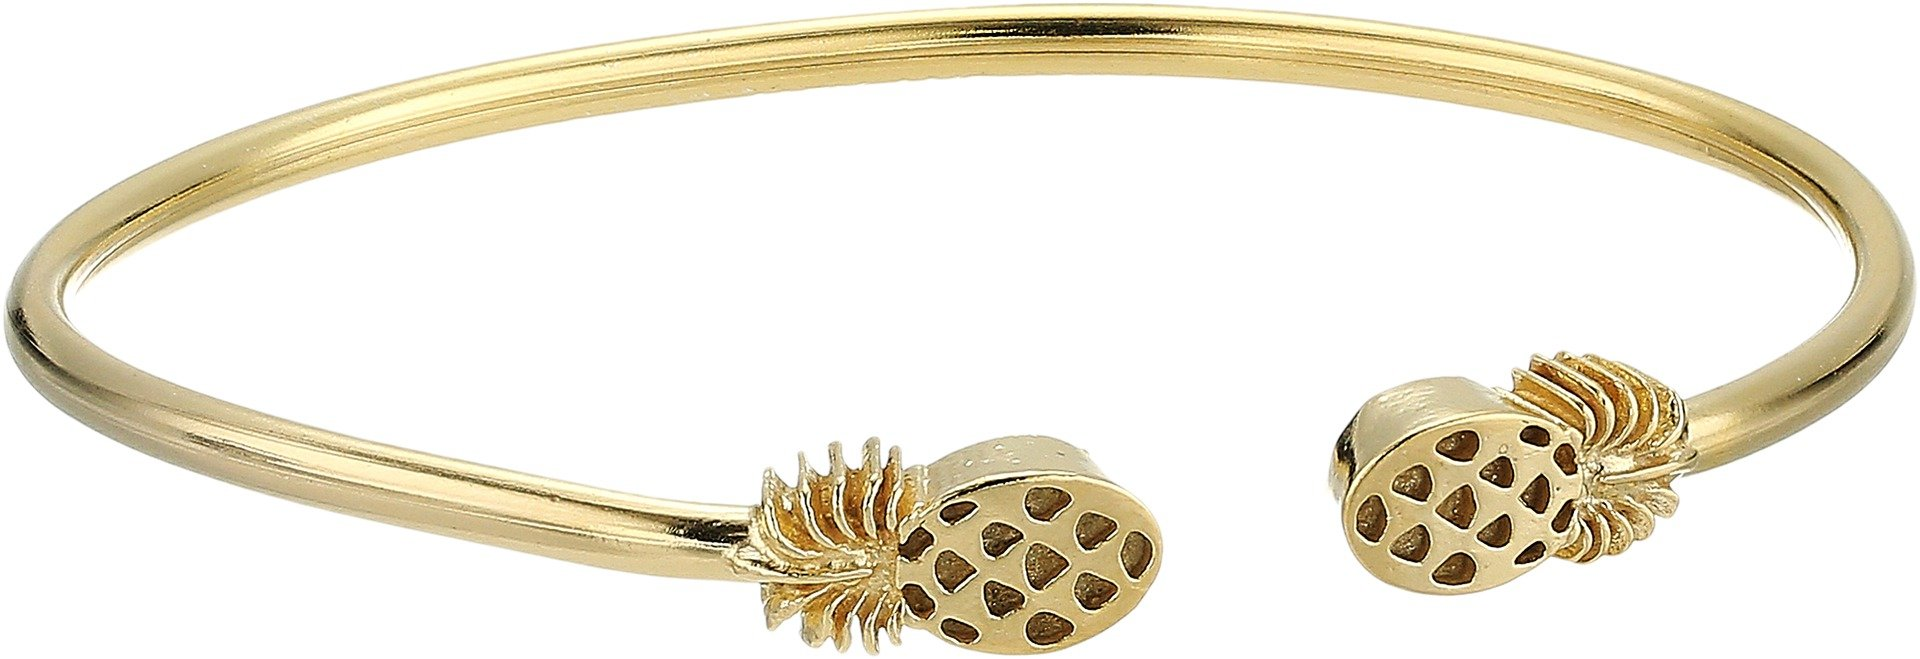 Alex and Ani Women's Pineapple Cuff Bracelet 14kt Gold Plated One Size